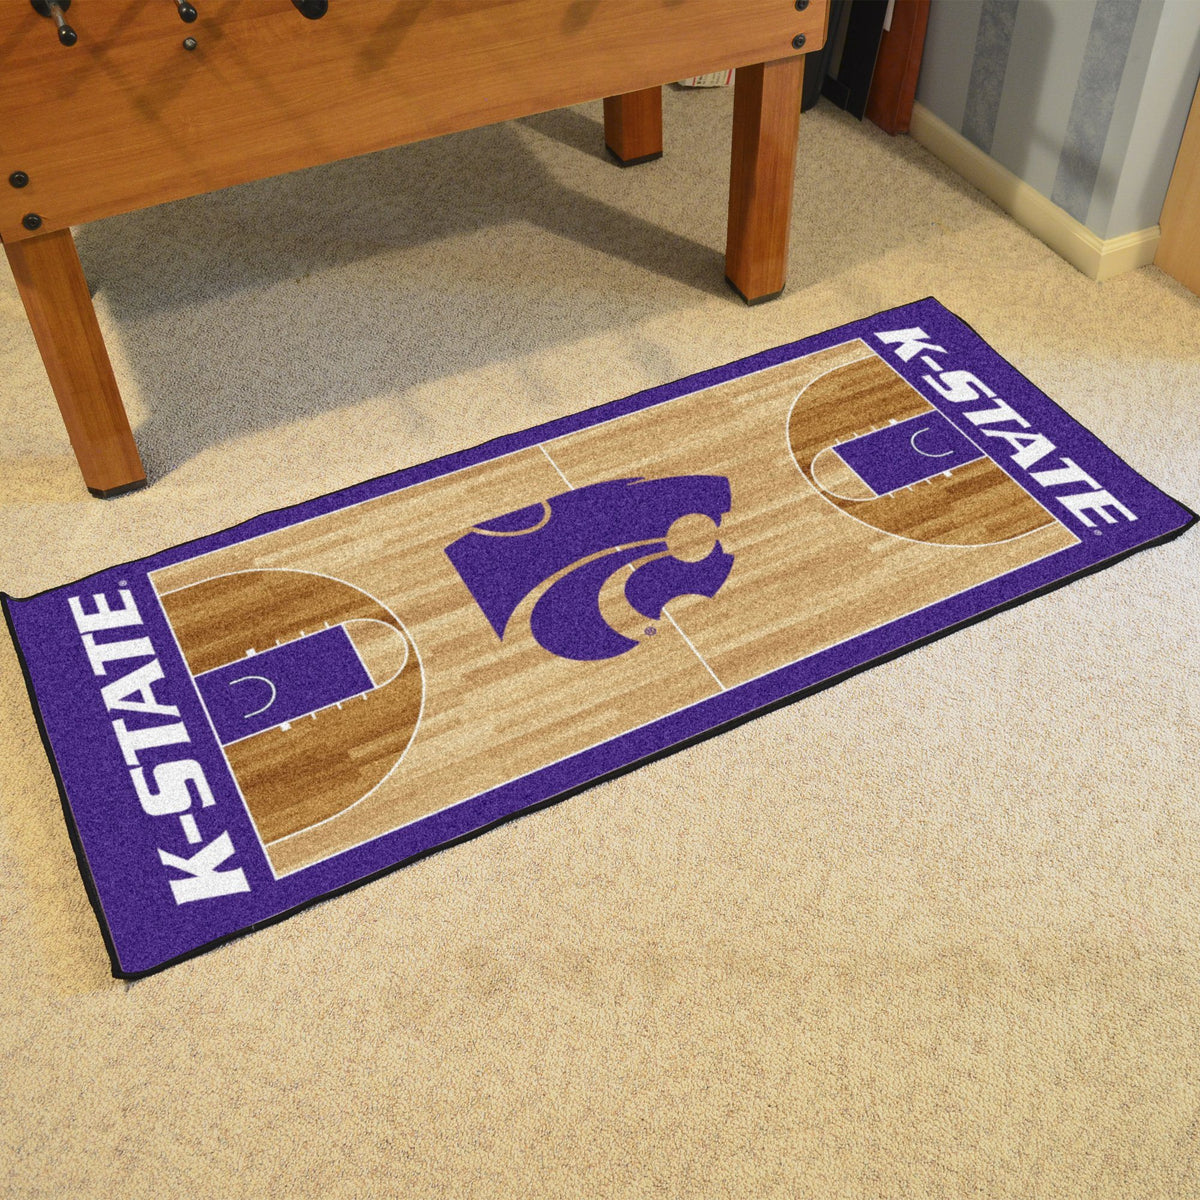 Collegiate - NCAA Basketball Runner Collegiate Mats, Rectangular Mats, NCAA Basketball Runner, Collegiate, Home Fan Mats Kansas State